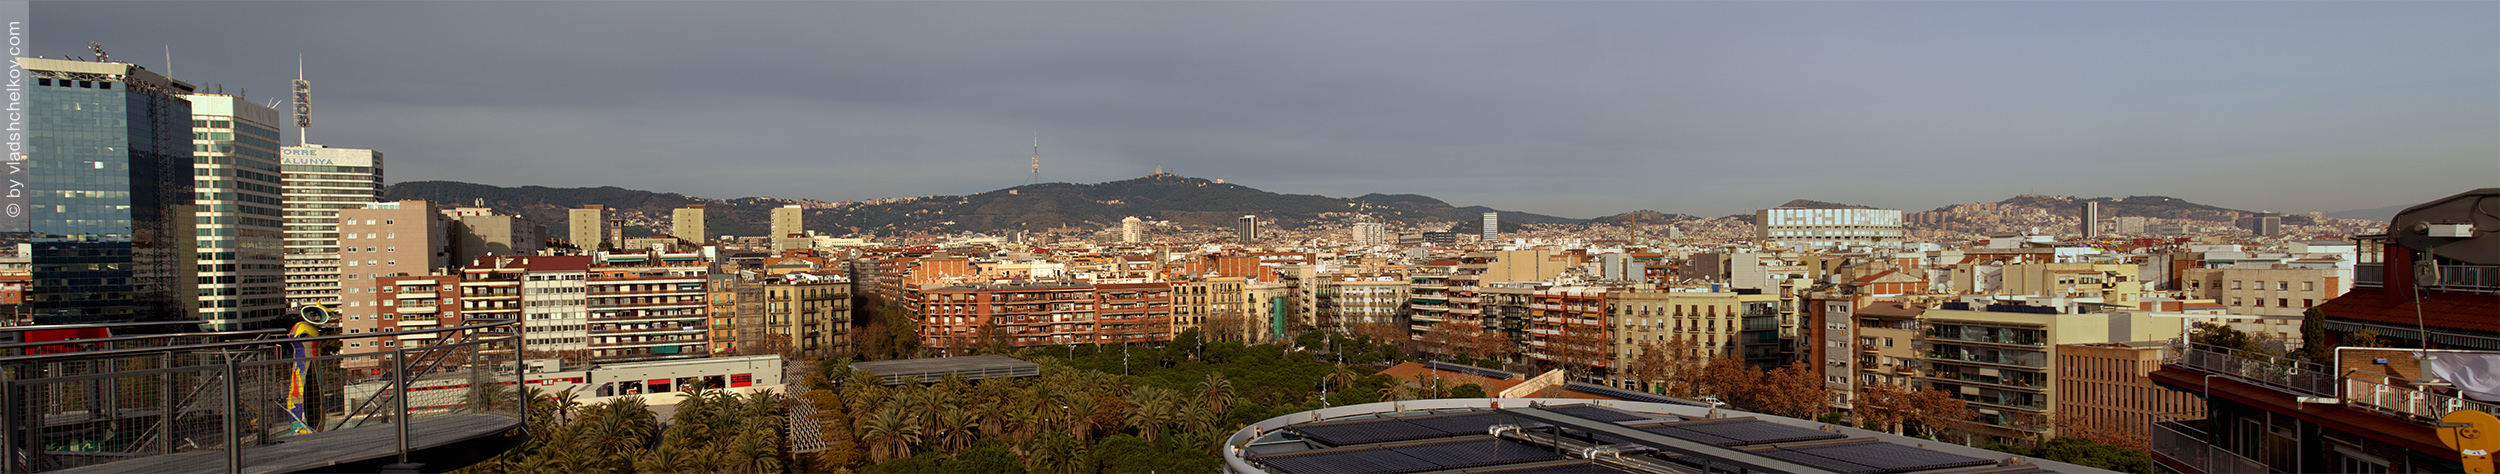 Barcelona from the roof of Arena